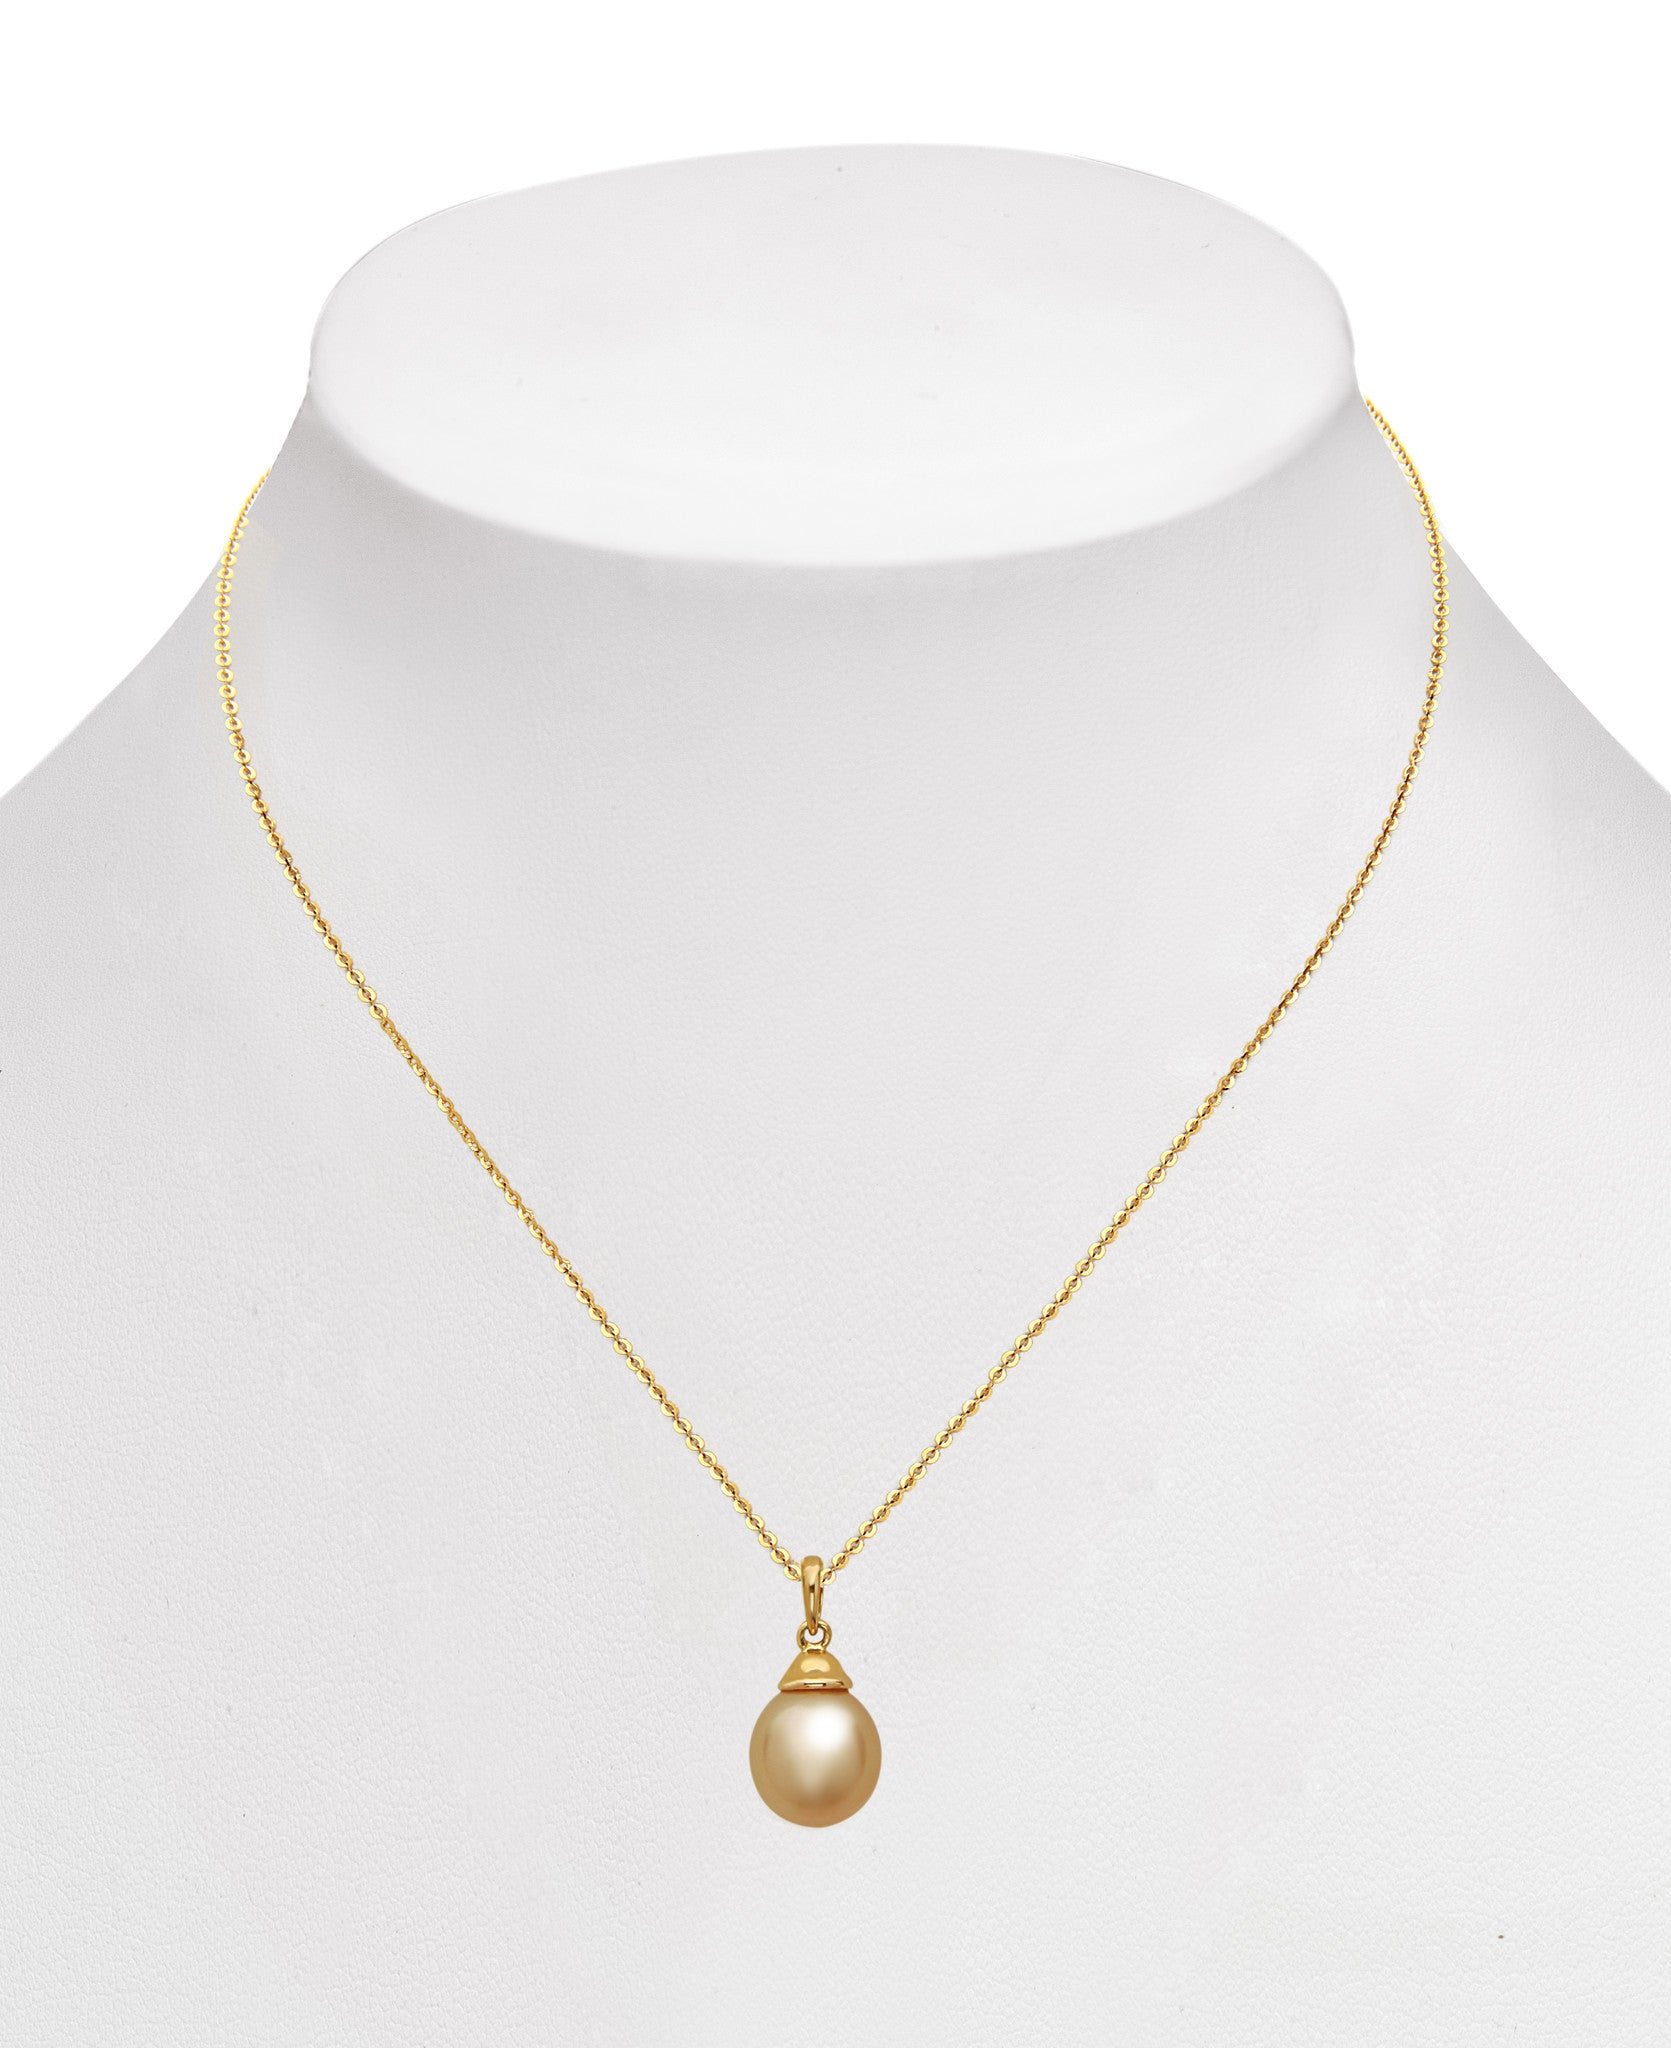 9-10mm Golden South Sea Pearl Pendant Necklace